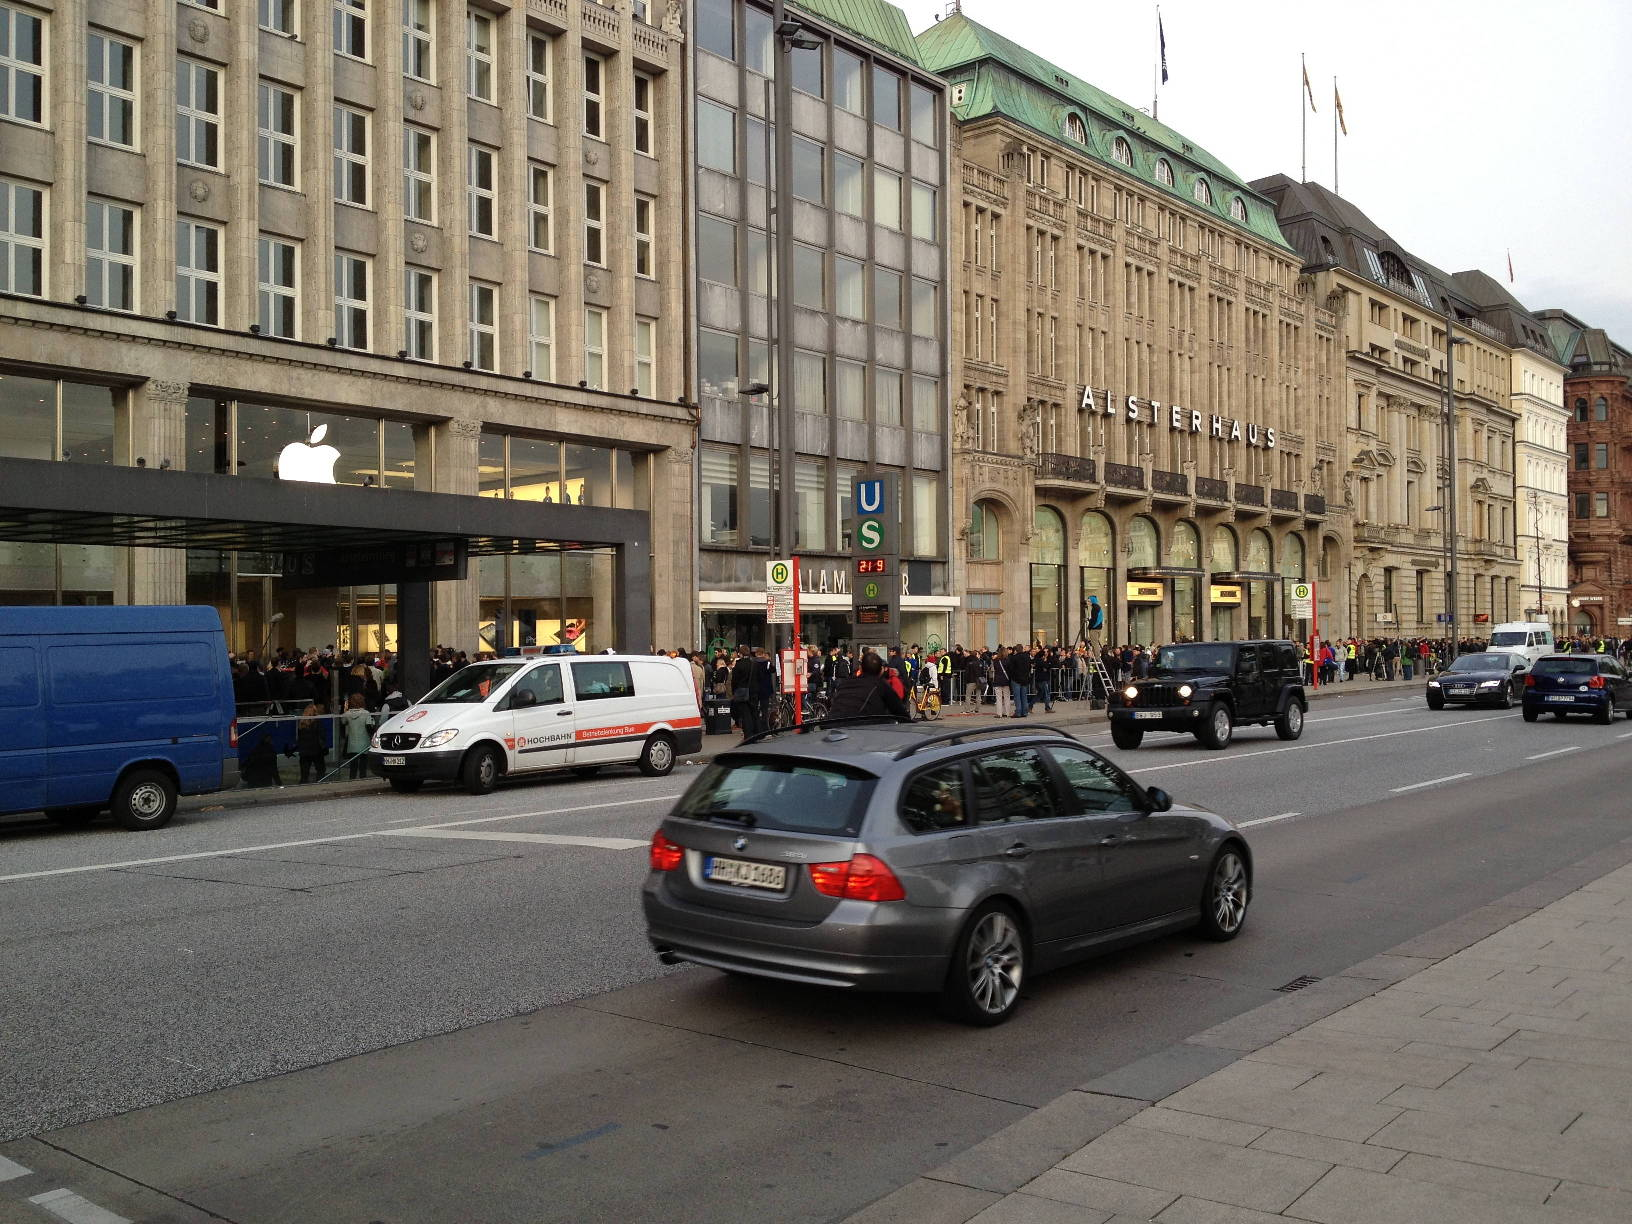 Bilder vom Apple Store, Hamburg